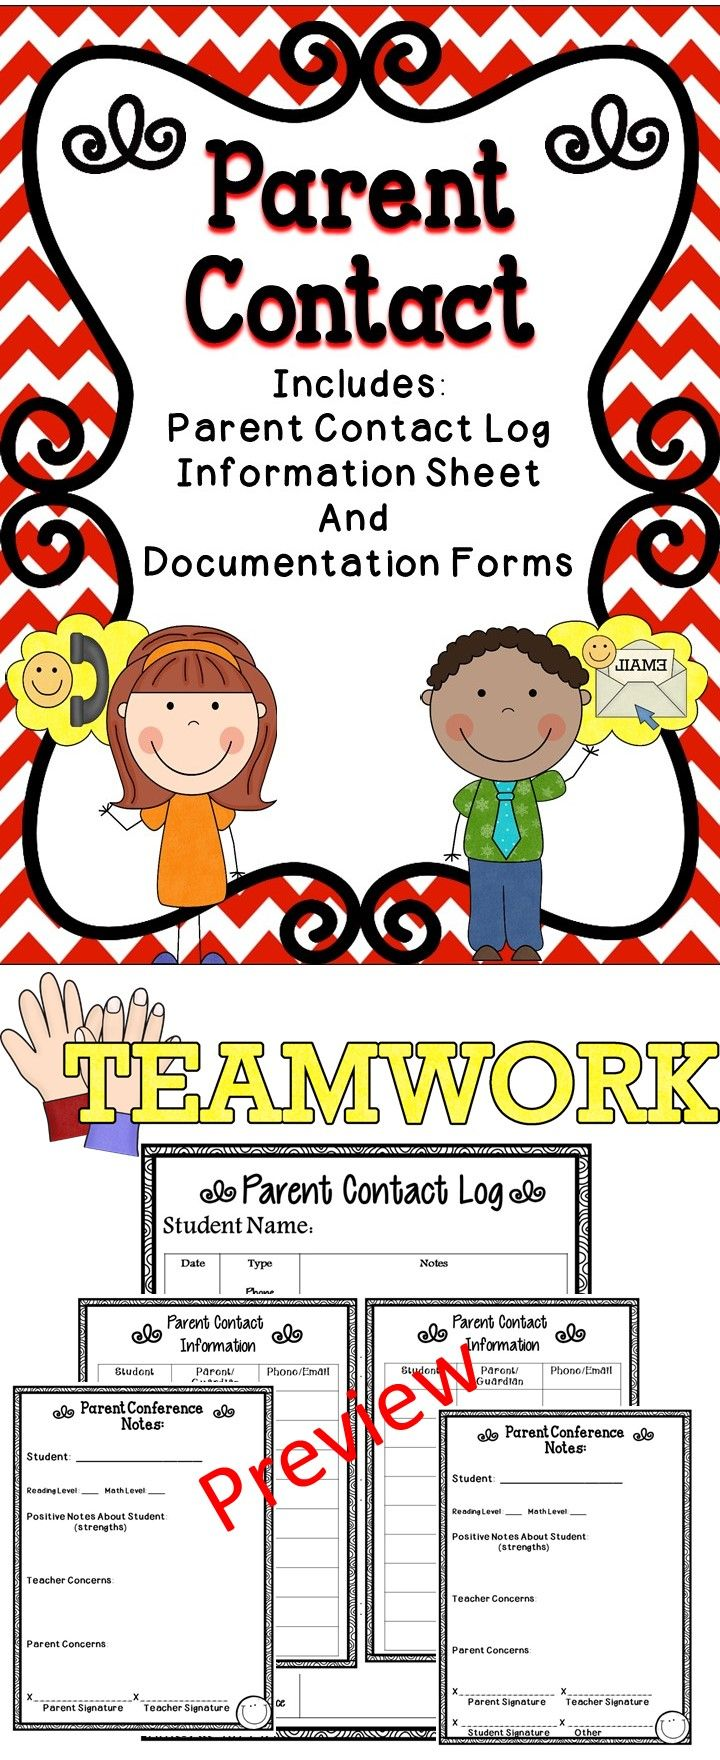 Parent Contact Forms - A great tool to use in your classroom to build positive parent relationships. #tpt  #education #conference